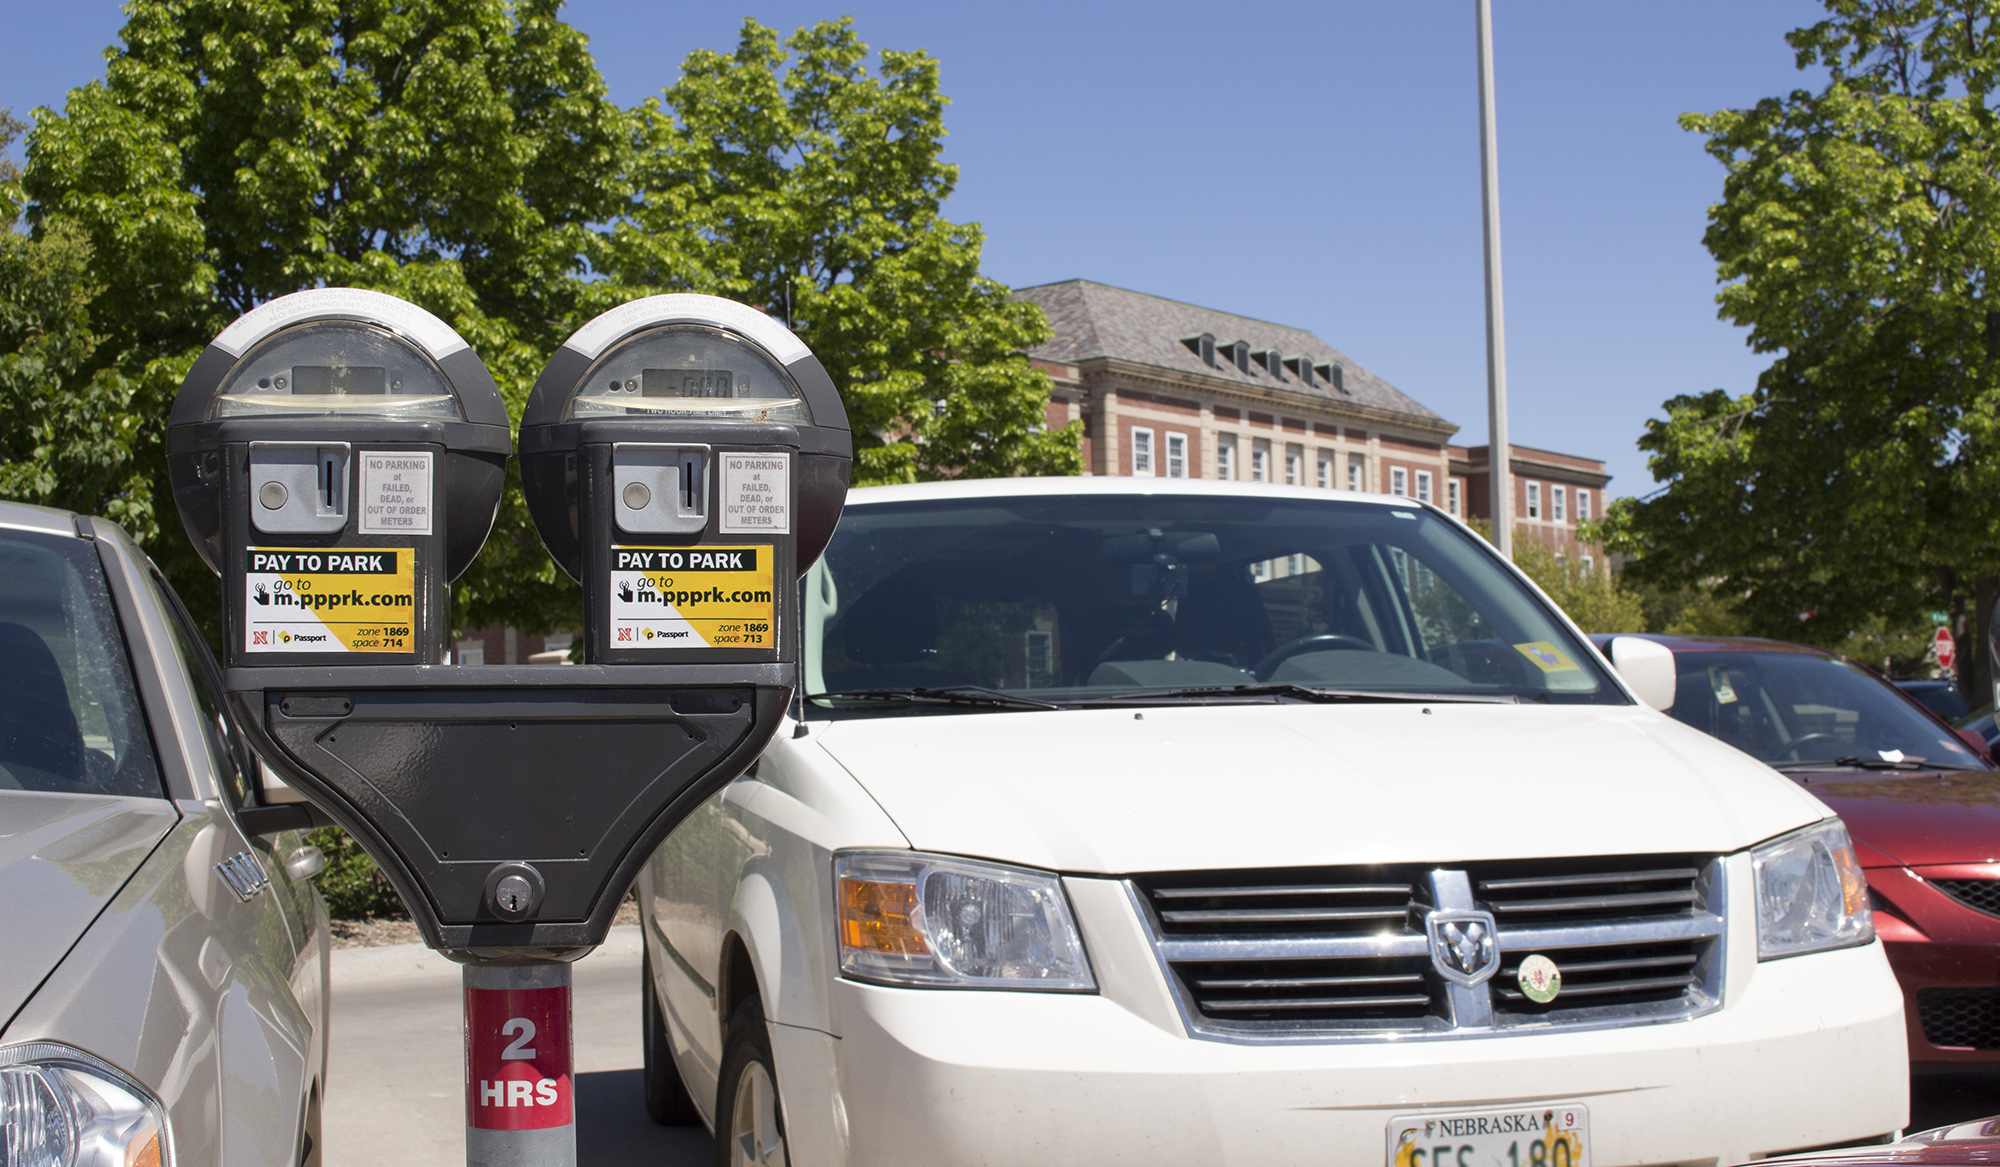 parking meters for short term on campus parking